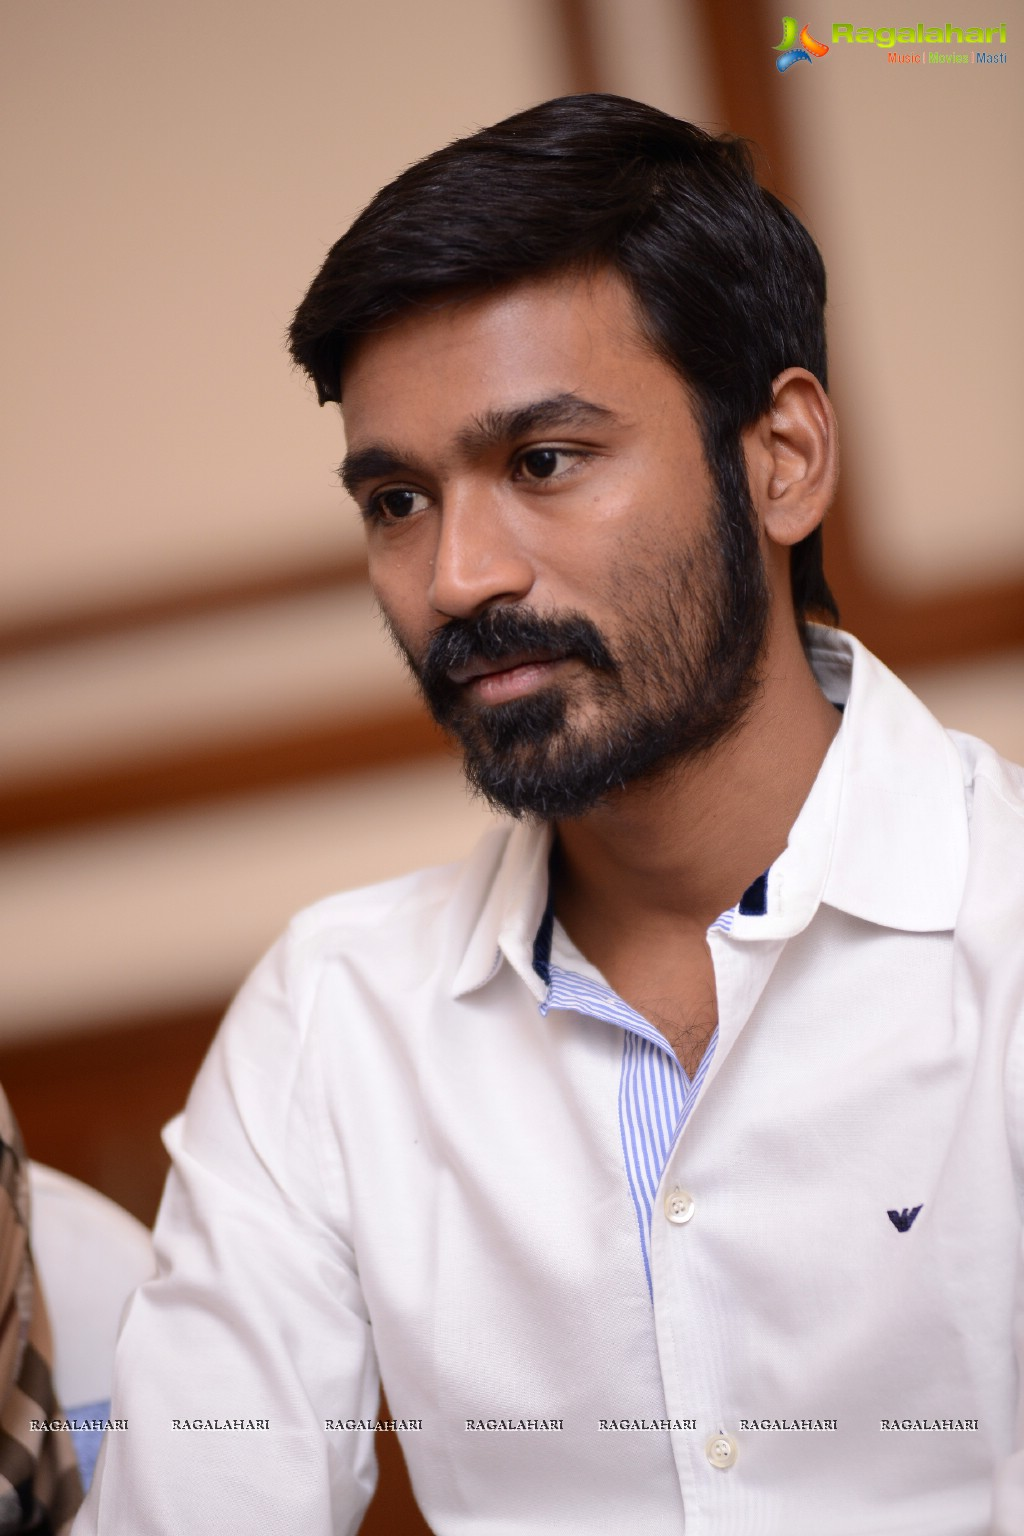 dhanush image 40 | telugu actor photos,images, photos, pictures, hd